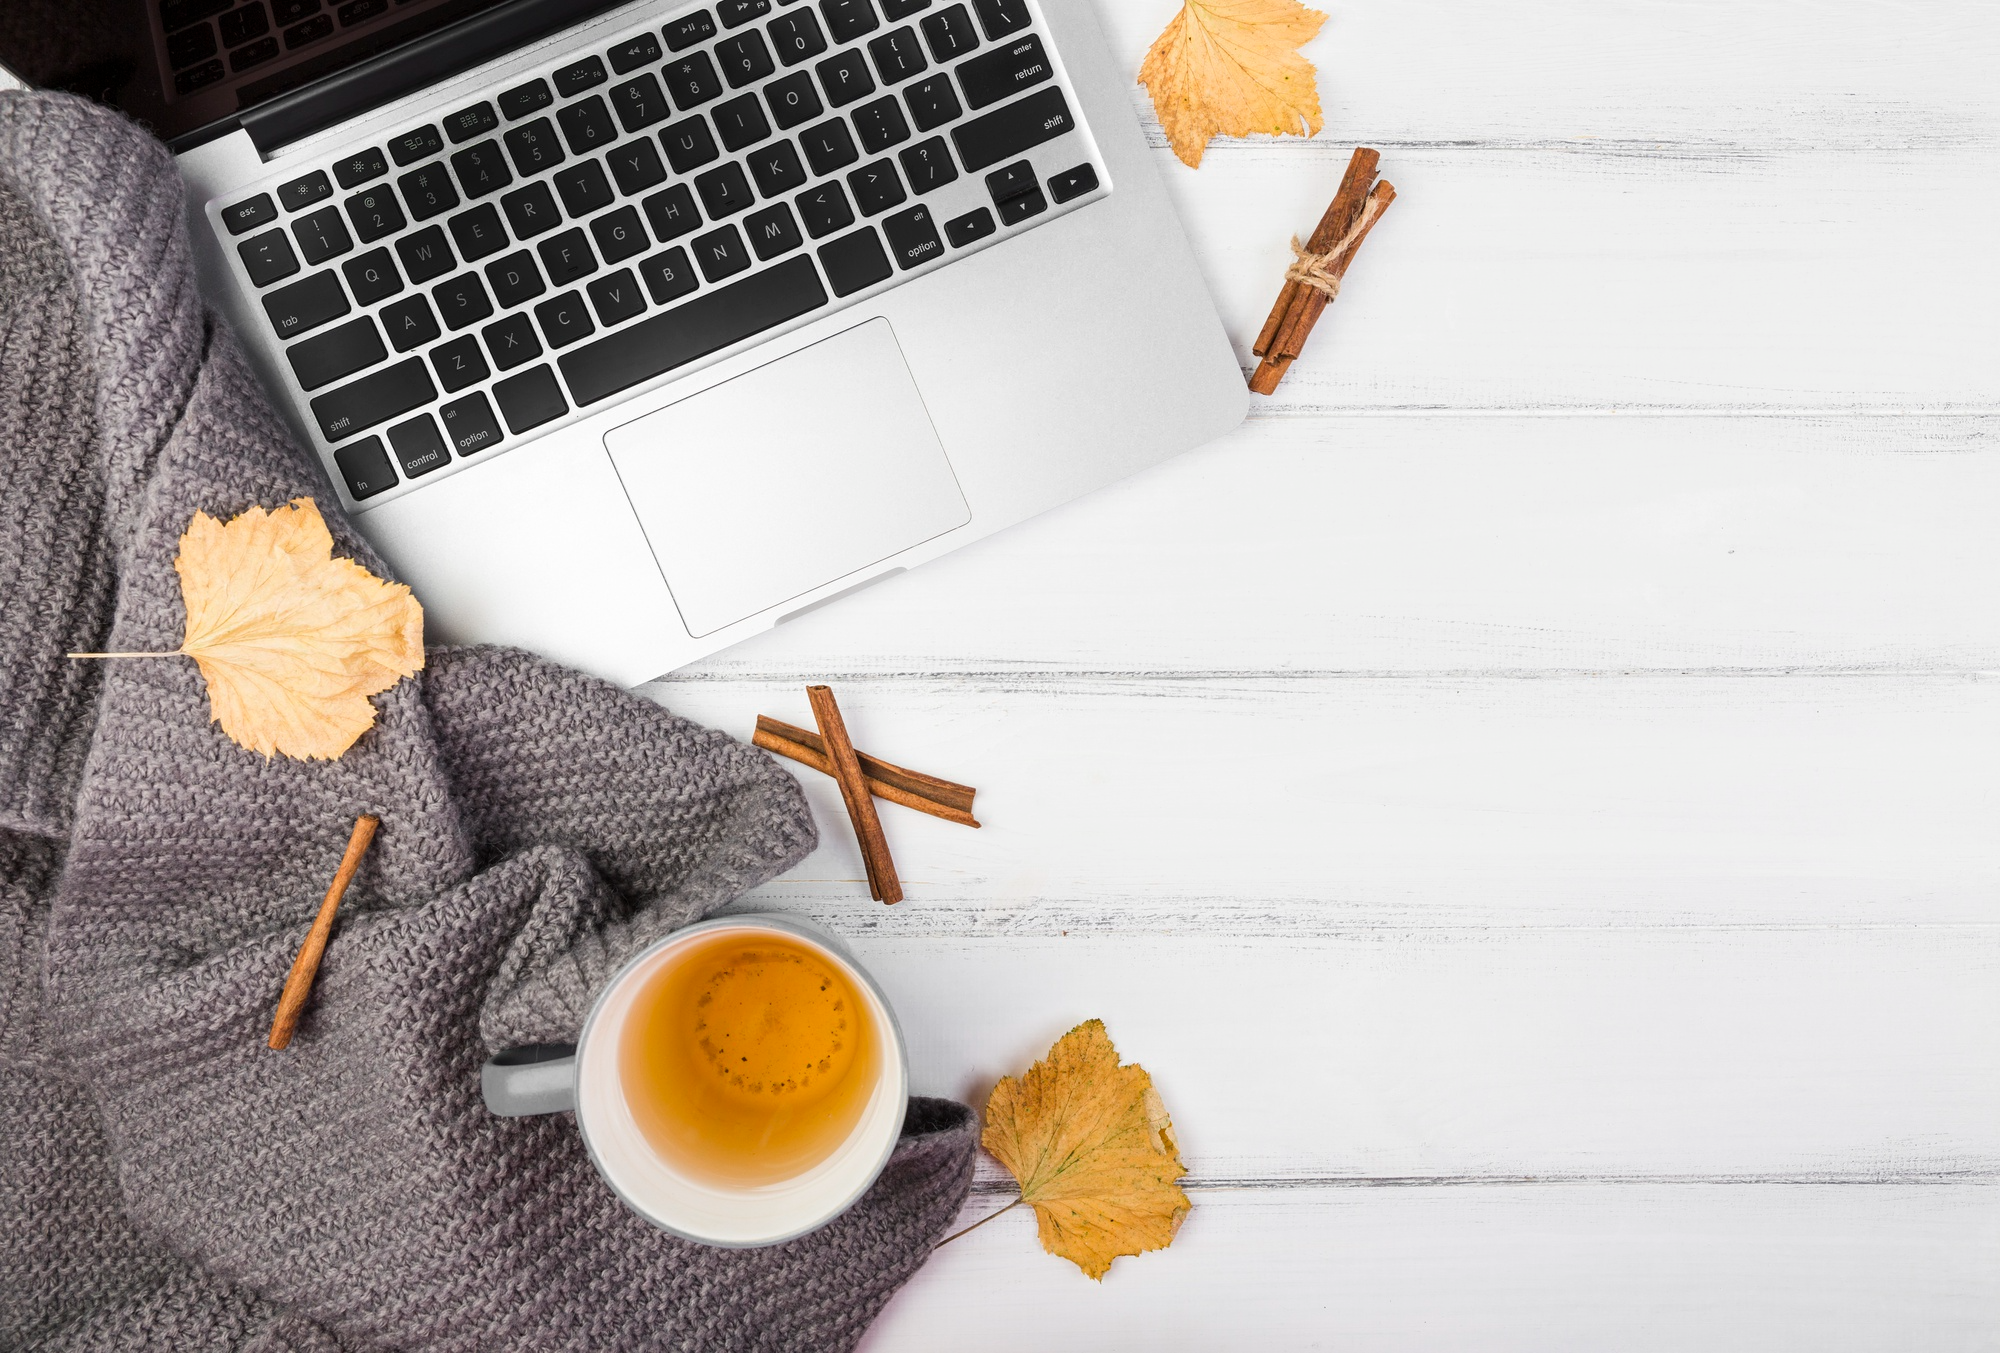 laptop and scarf surrounded by autumn leaves, cinnamon sticks, and tea.